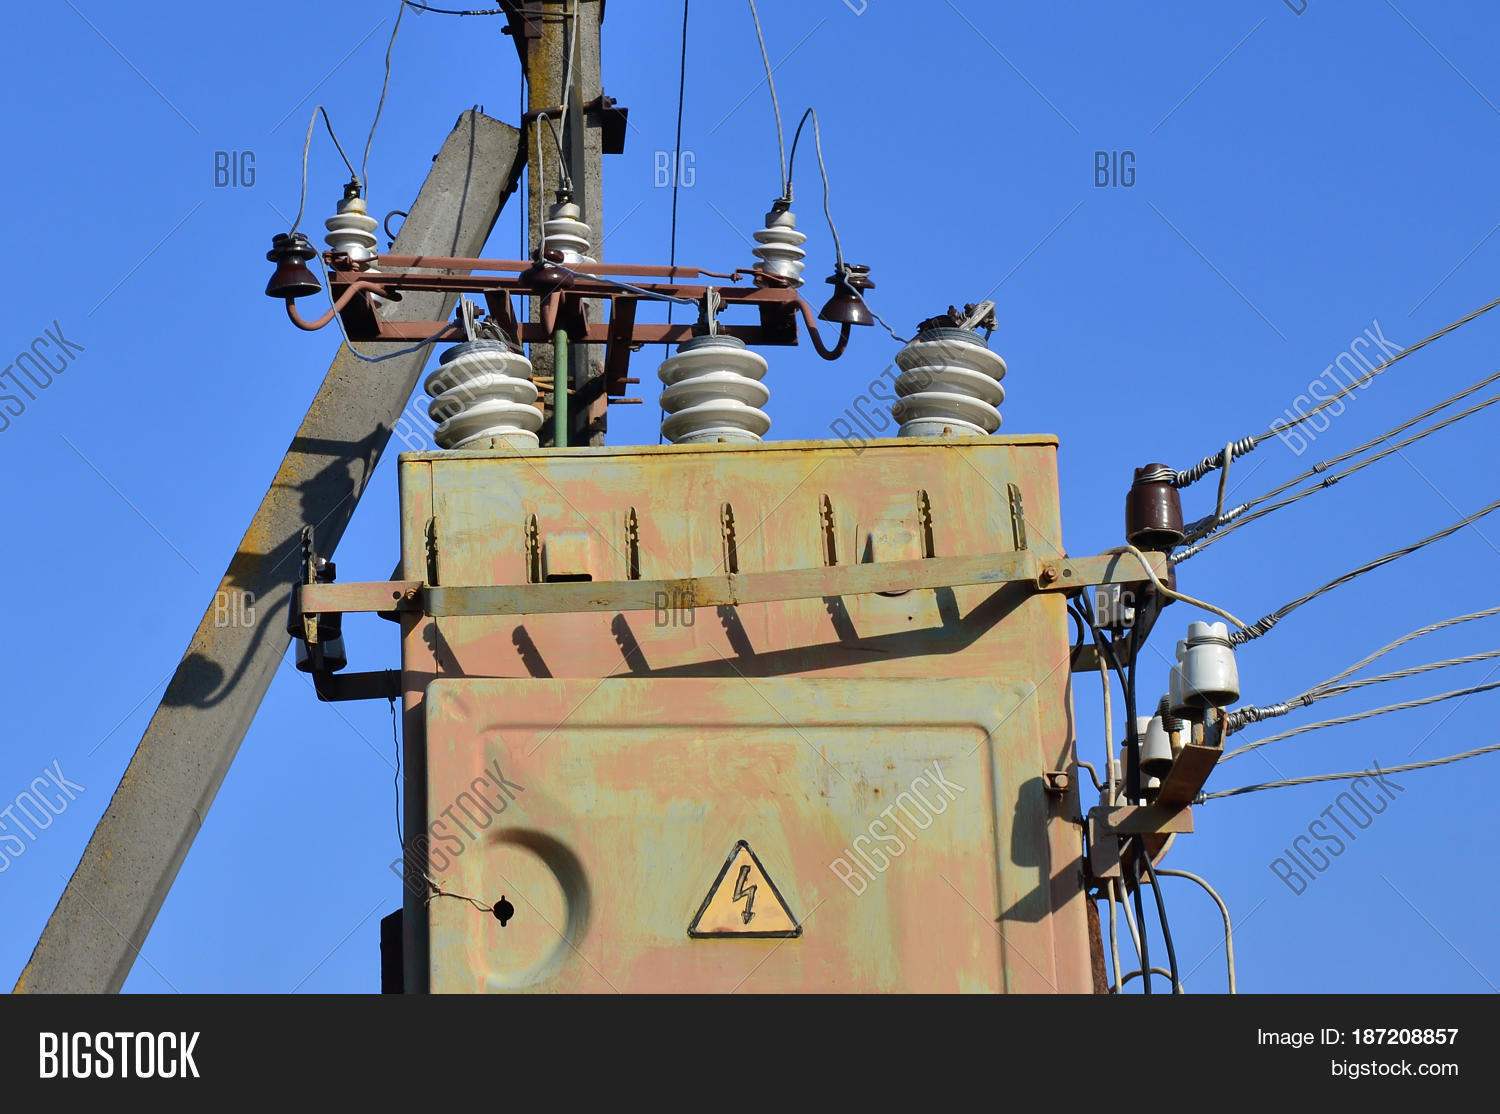 hight resolution of old and obsolete electrical transformer against the background of a cloudless blue sky device for